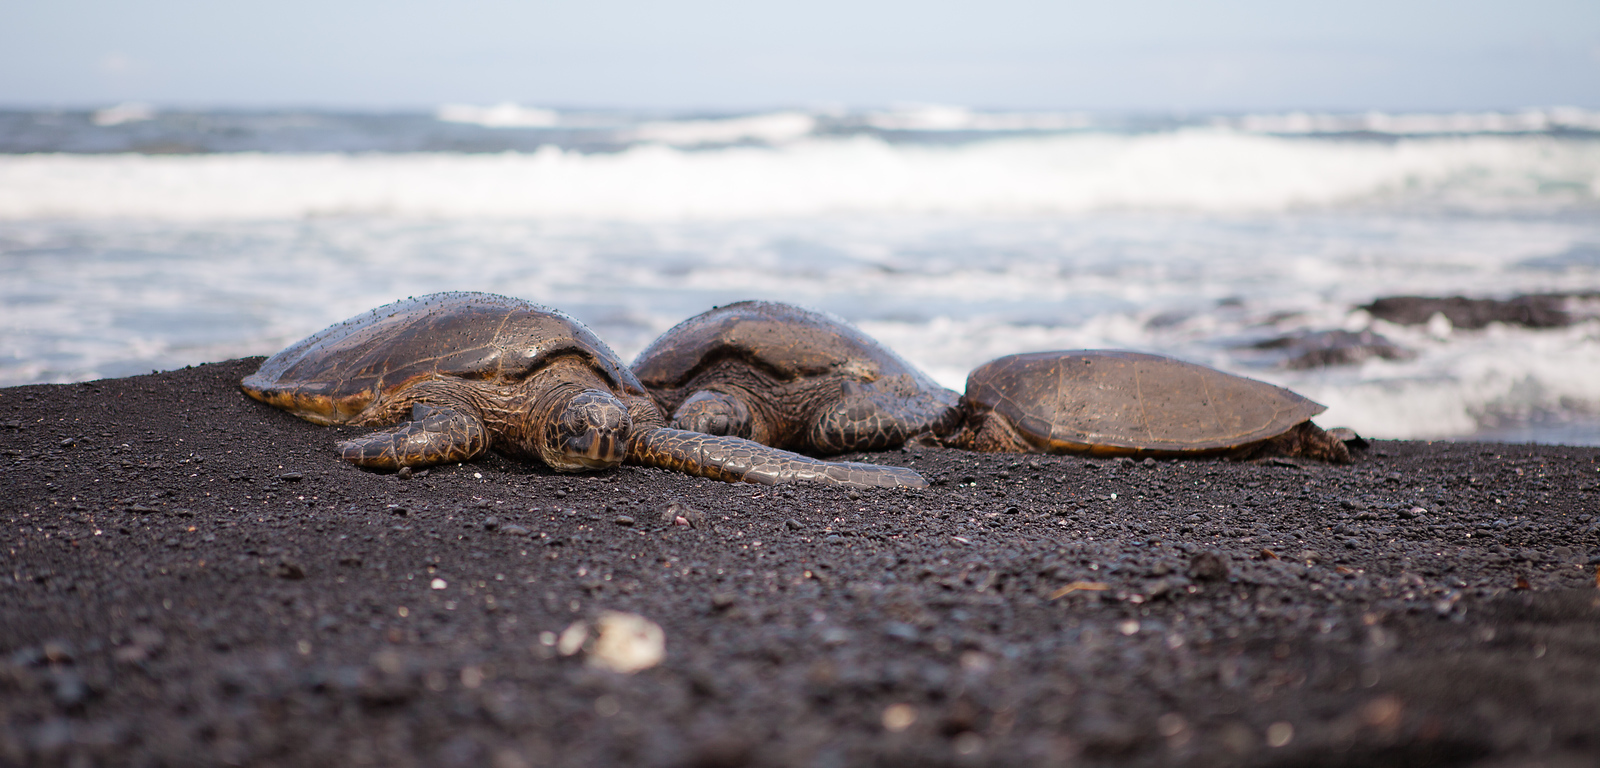 Turtles on Black Sand, Big Island of Hawaii.